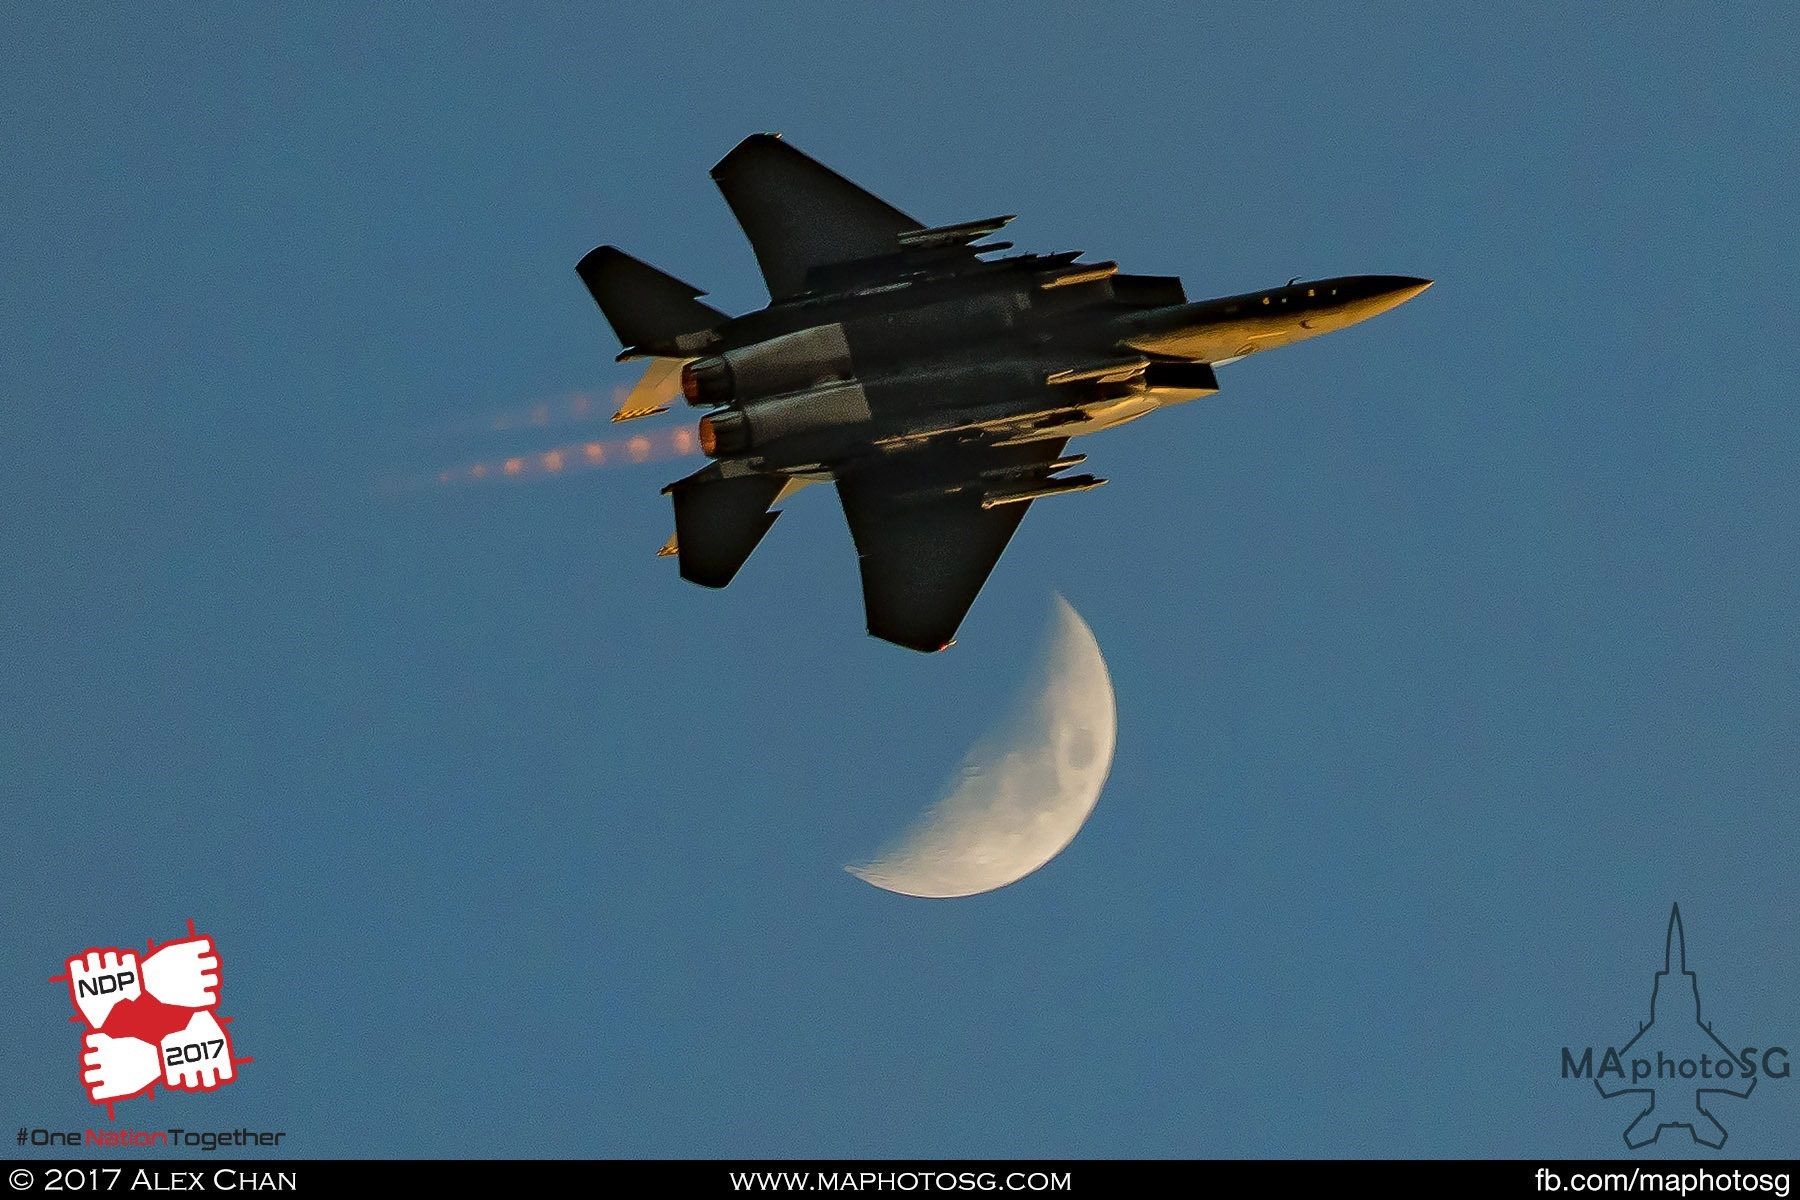 23. A single F-15SG passes the moon after the Salute to the Nation.